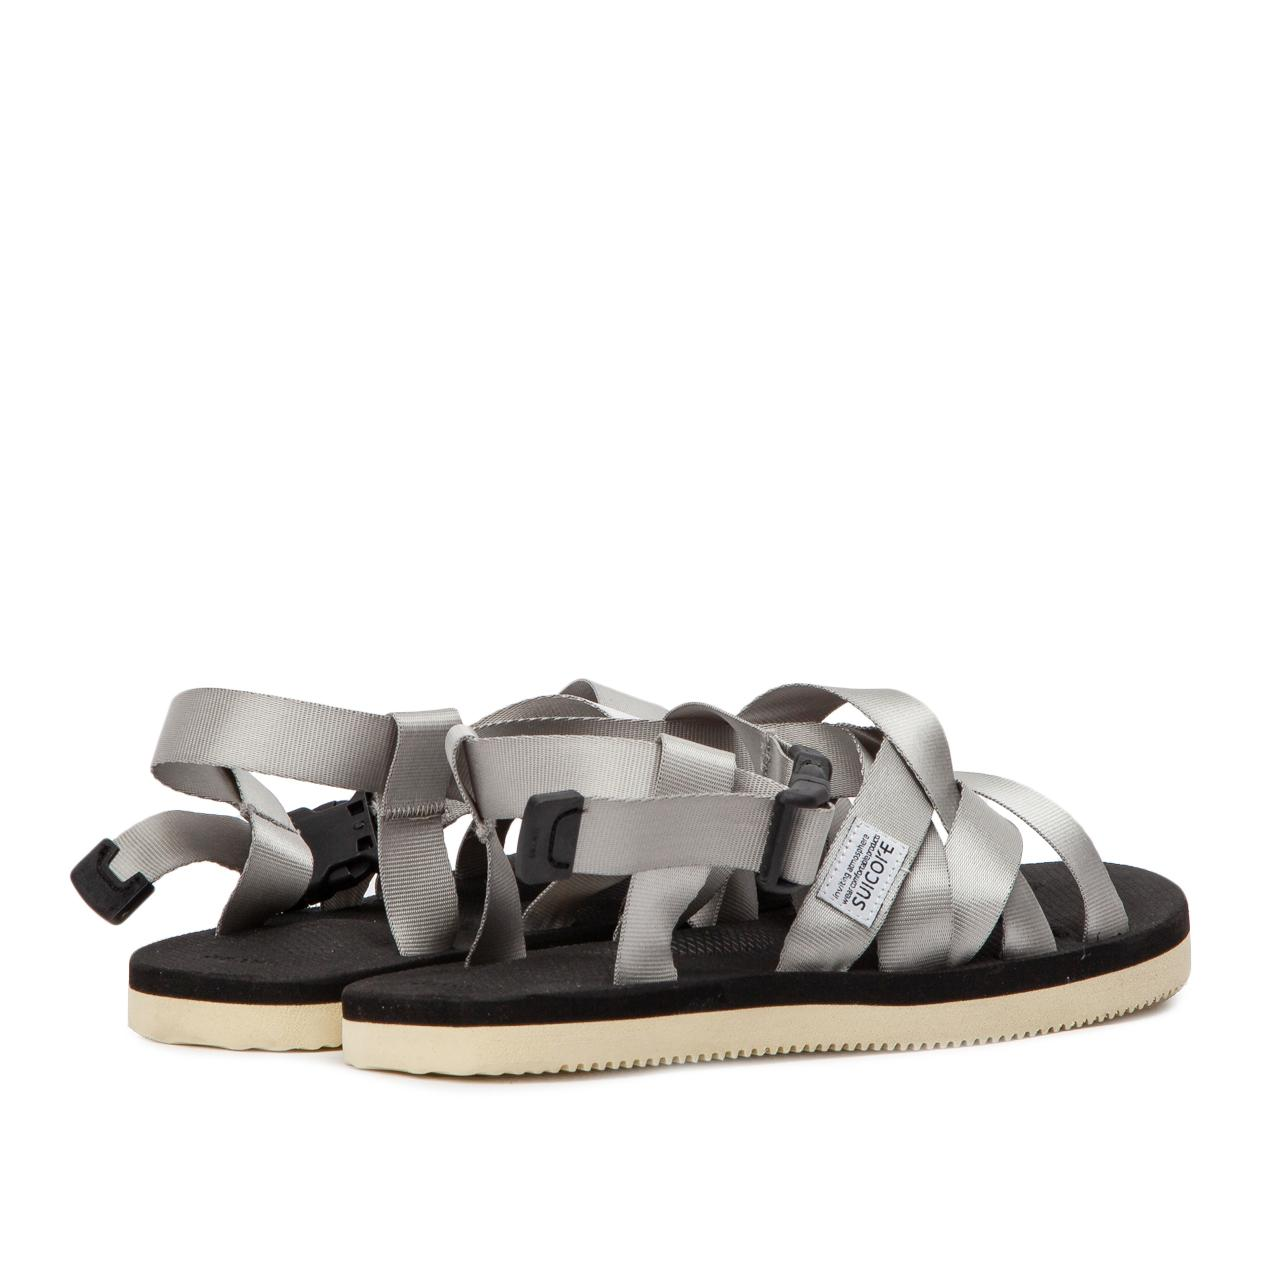 6b637c698c Suicoke Sandals Sama in Gray for Men - Lyst